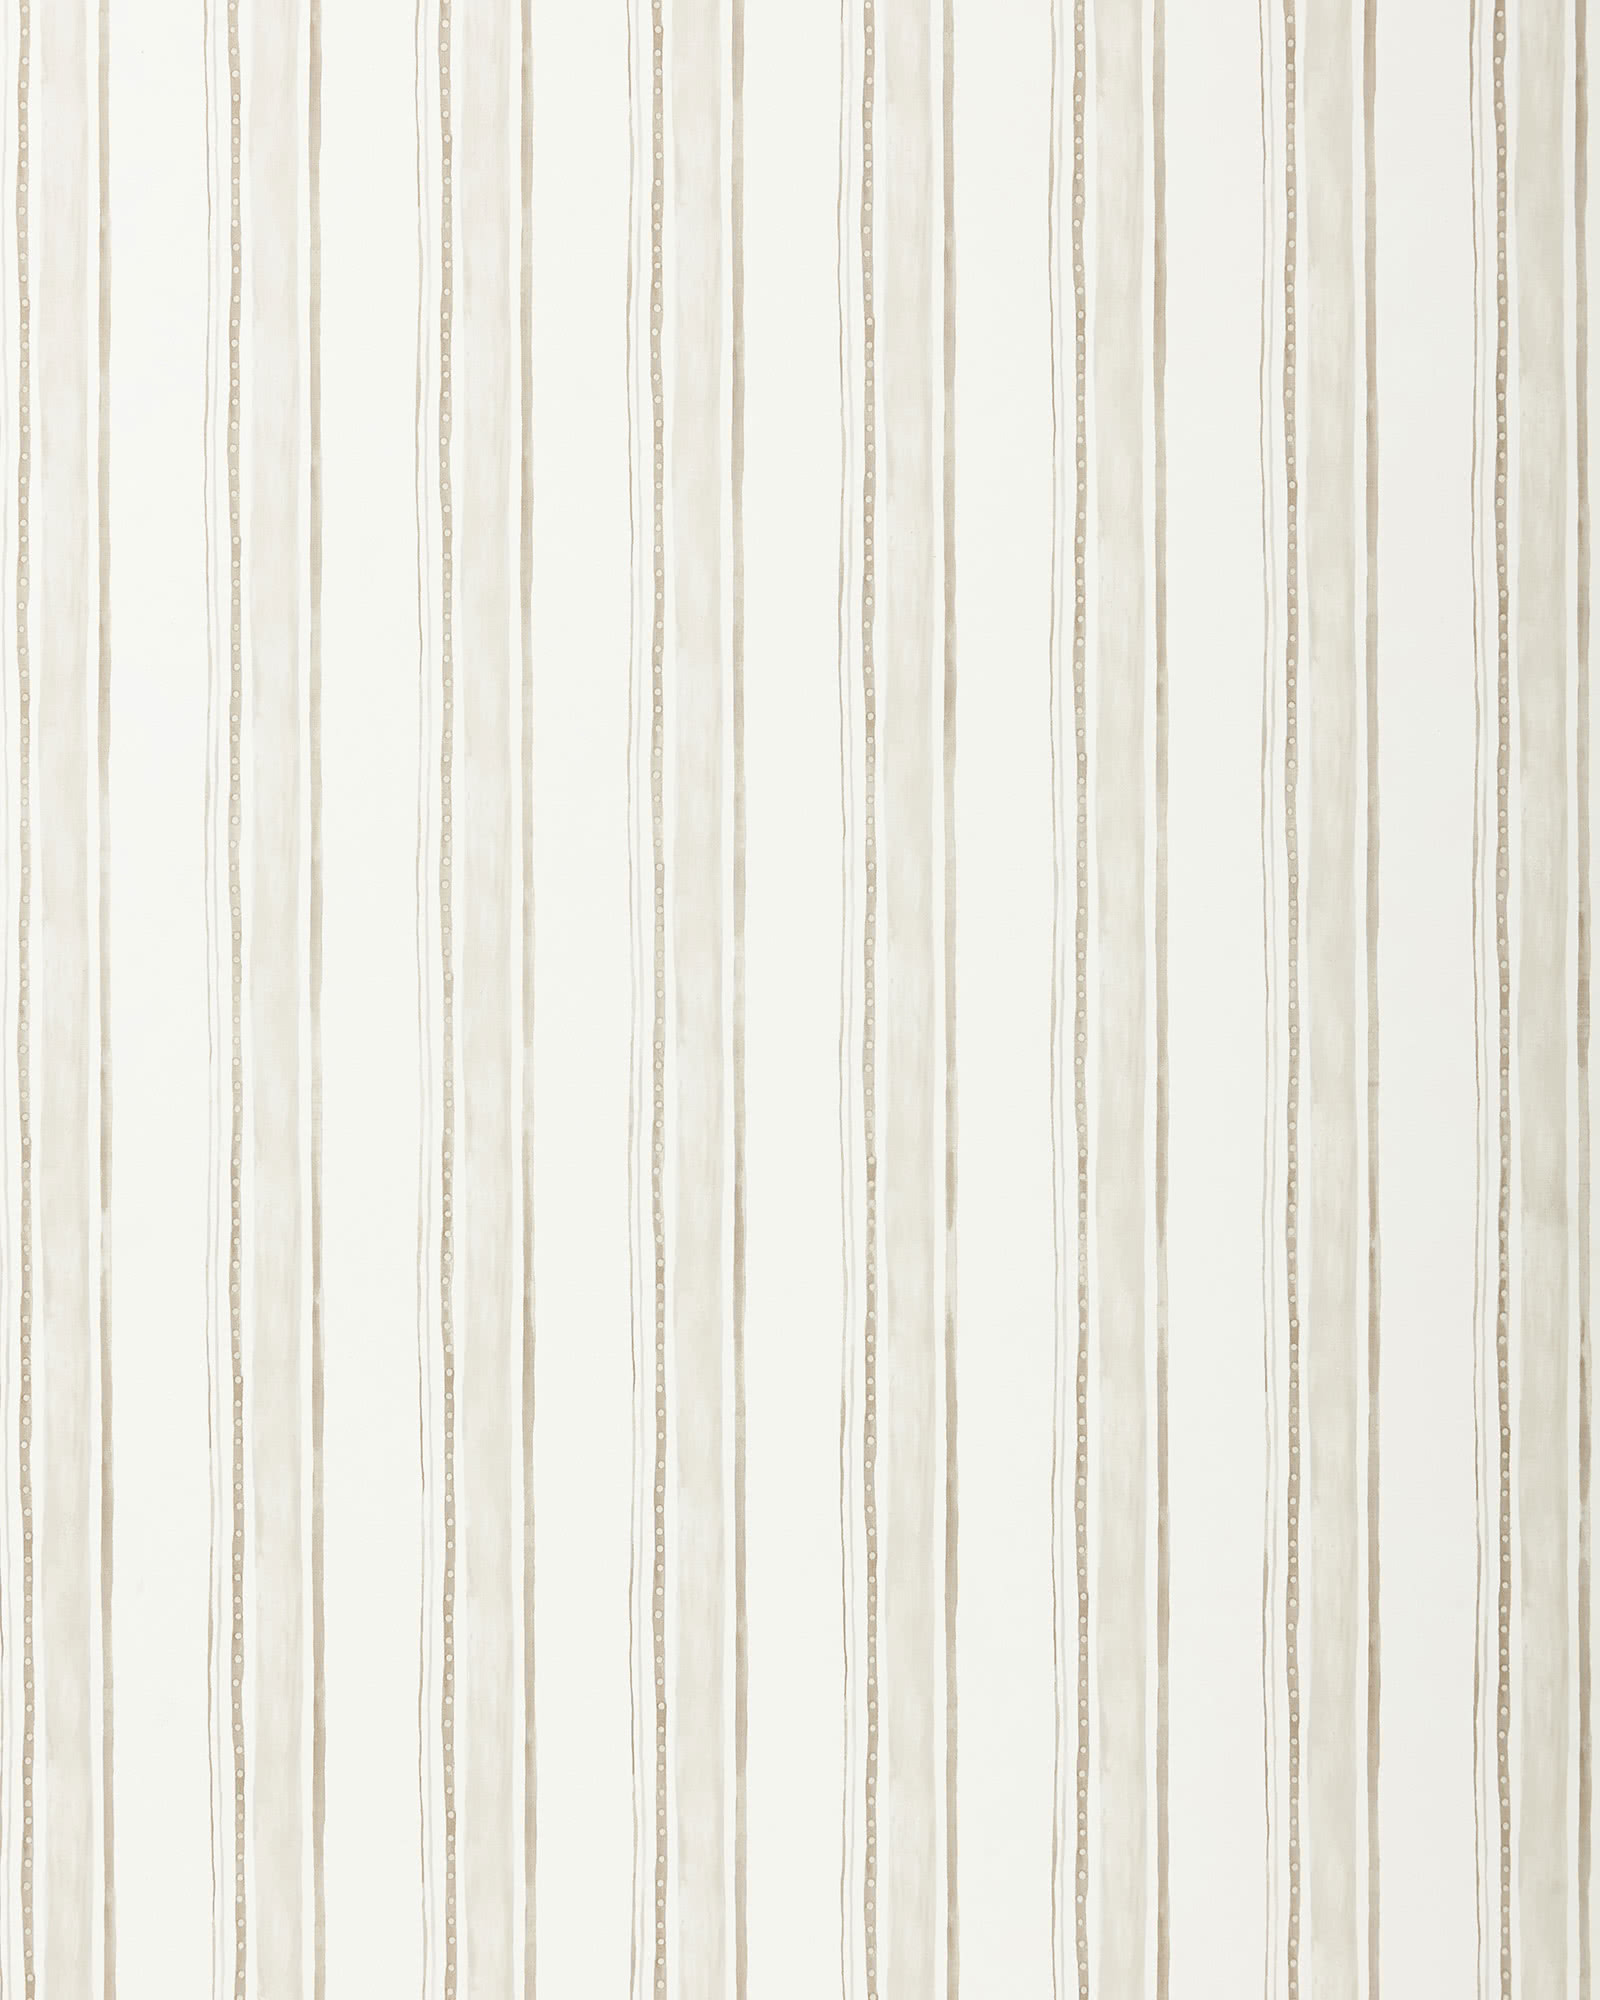 Acadia Stripe Wallpaper Swatch, Sand